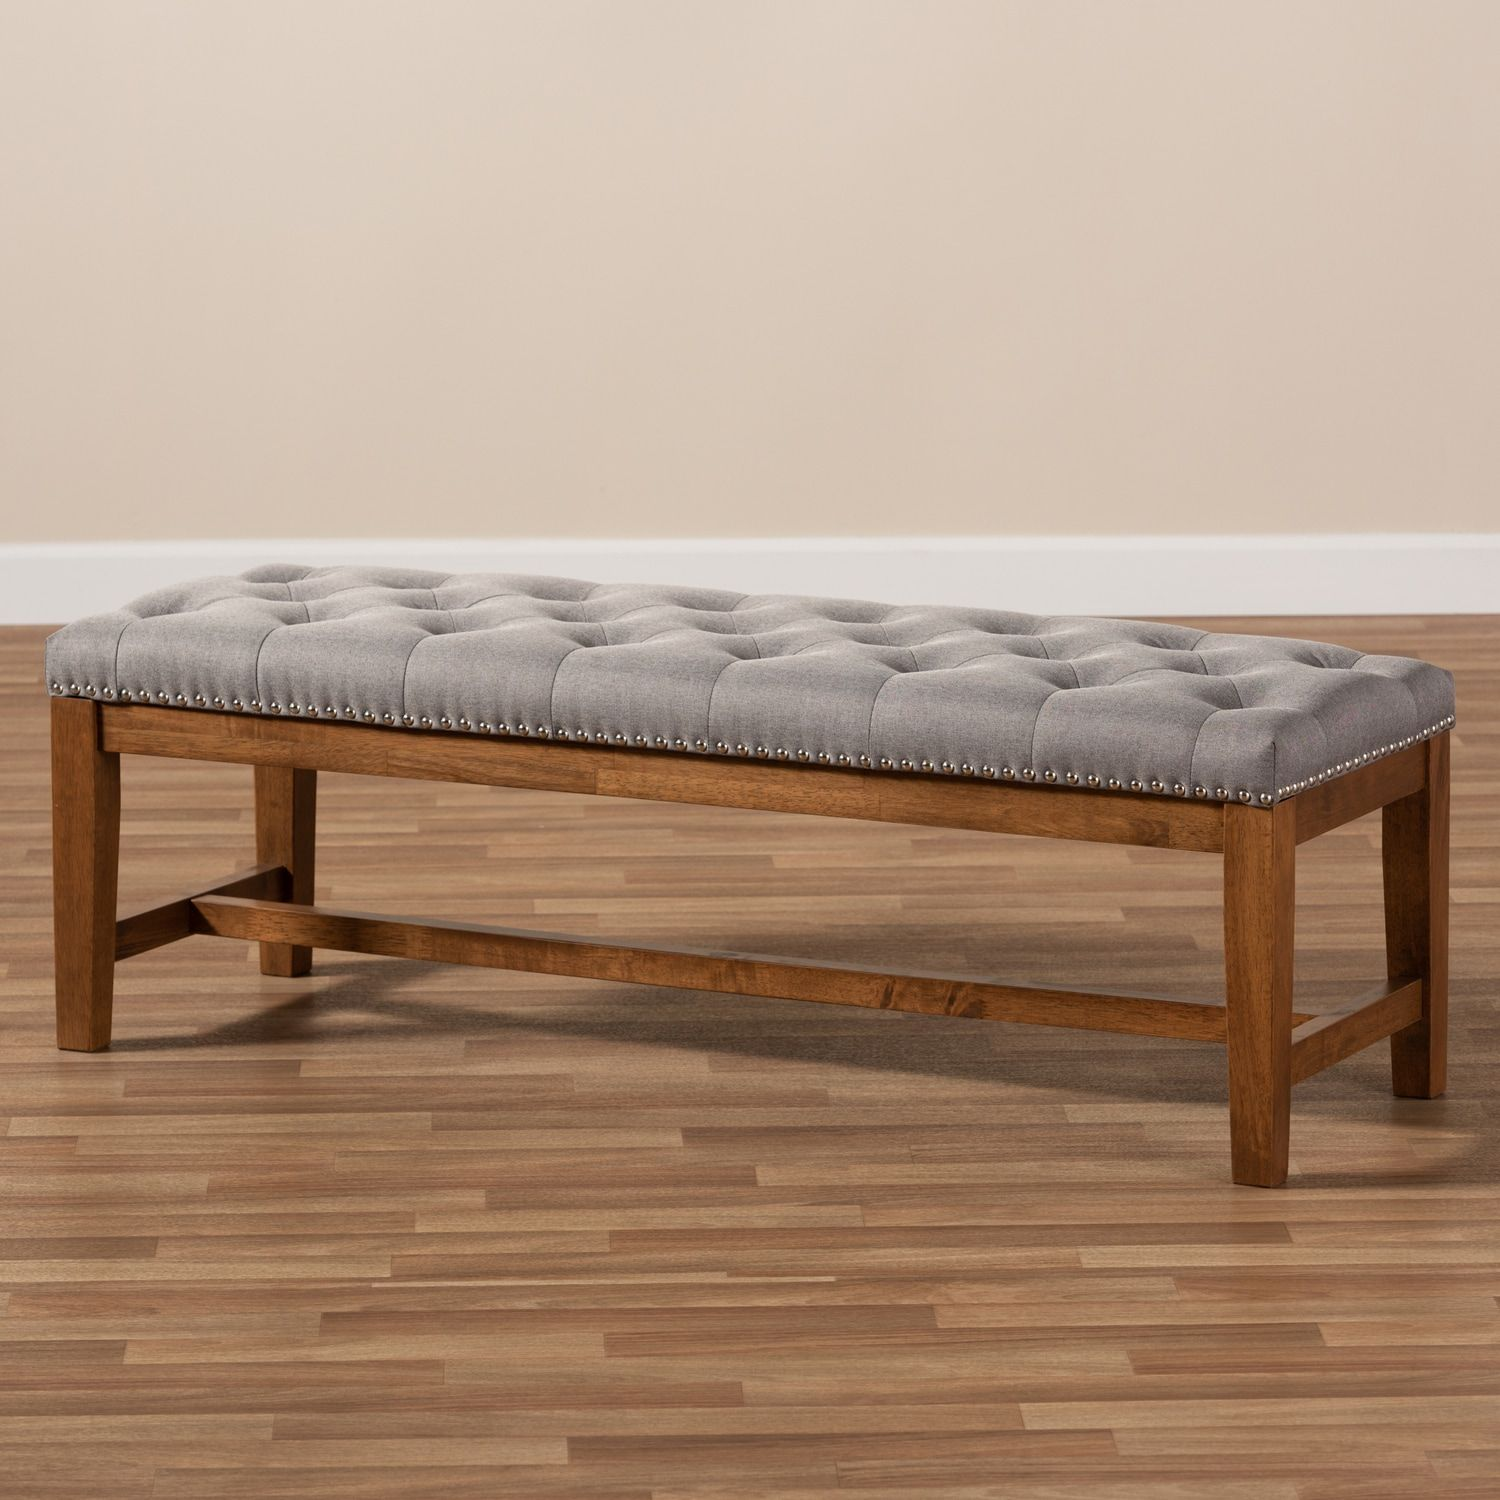 Baxton Studio Ainsley Bench Affiliate Studio Spon Baxton Bench Ainsley Living Room Seating Upholster Upholstered Bench